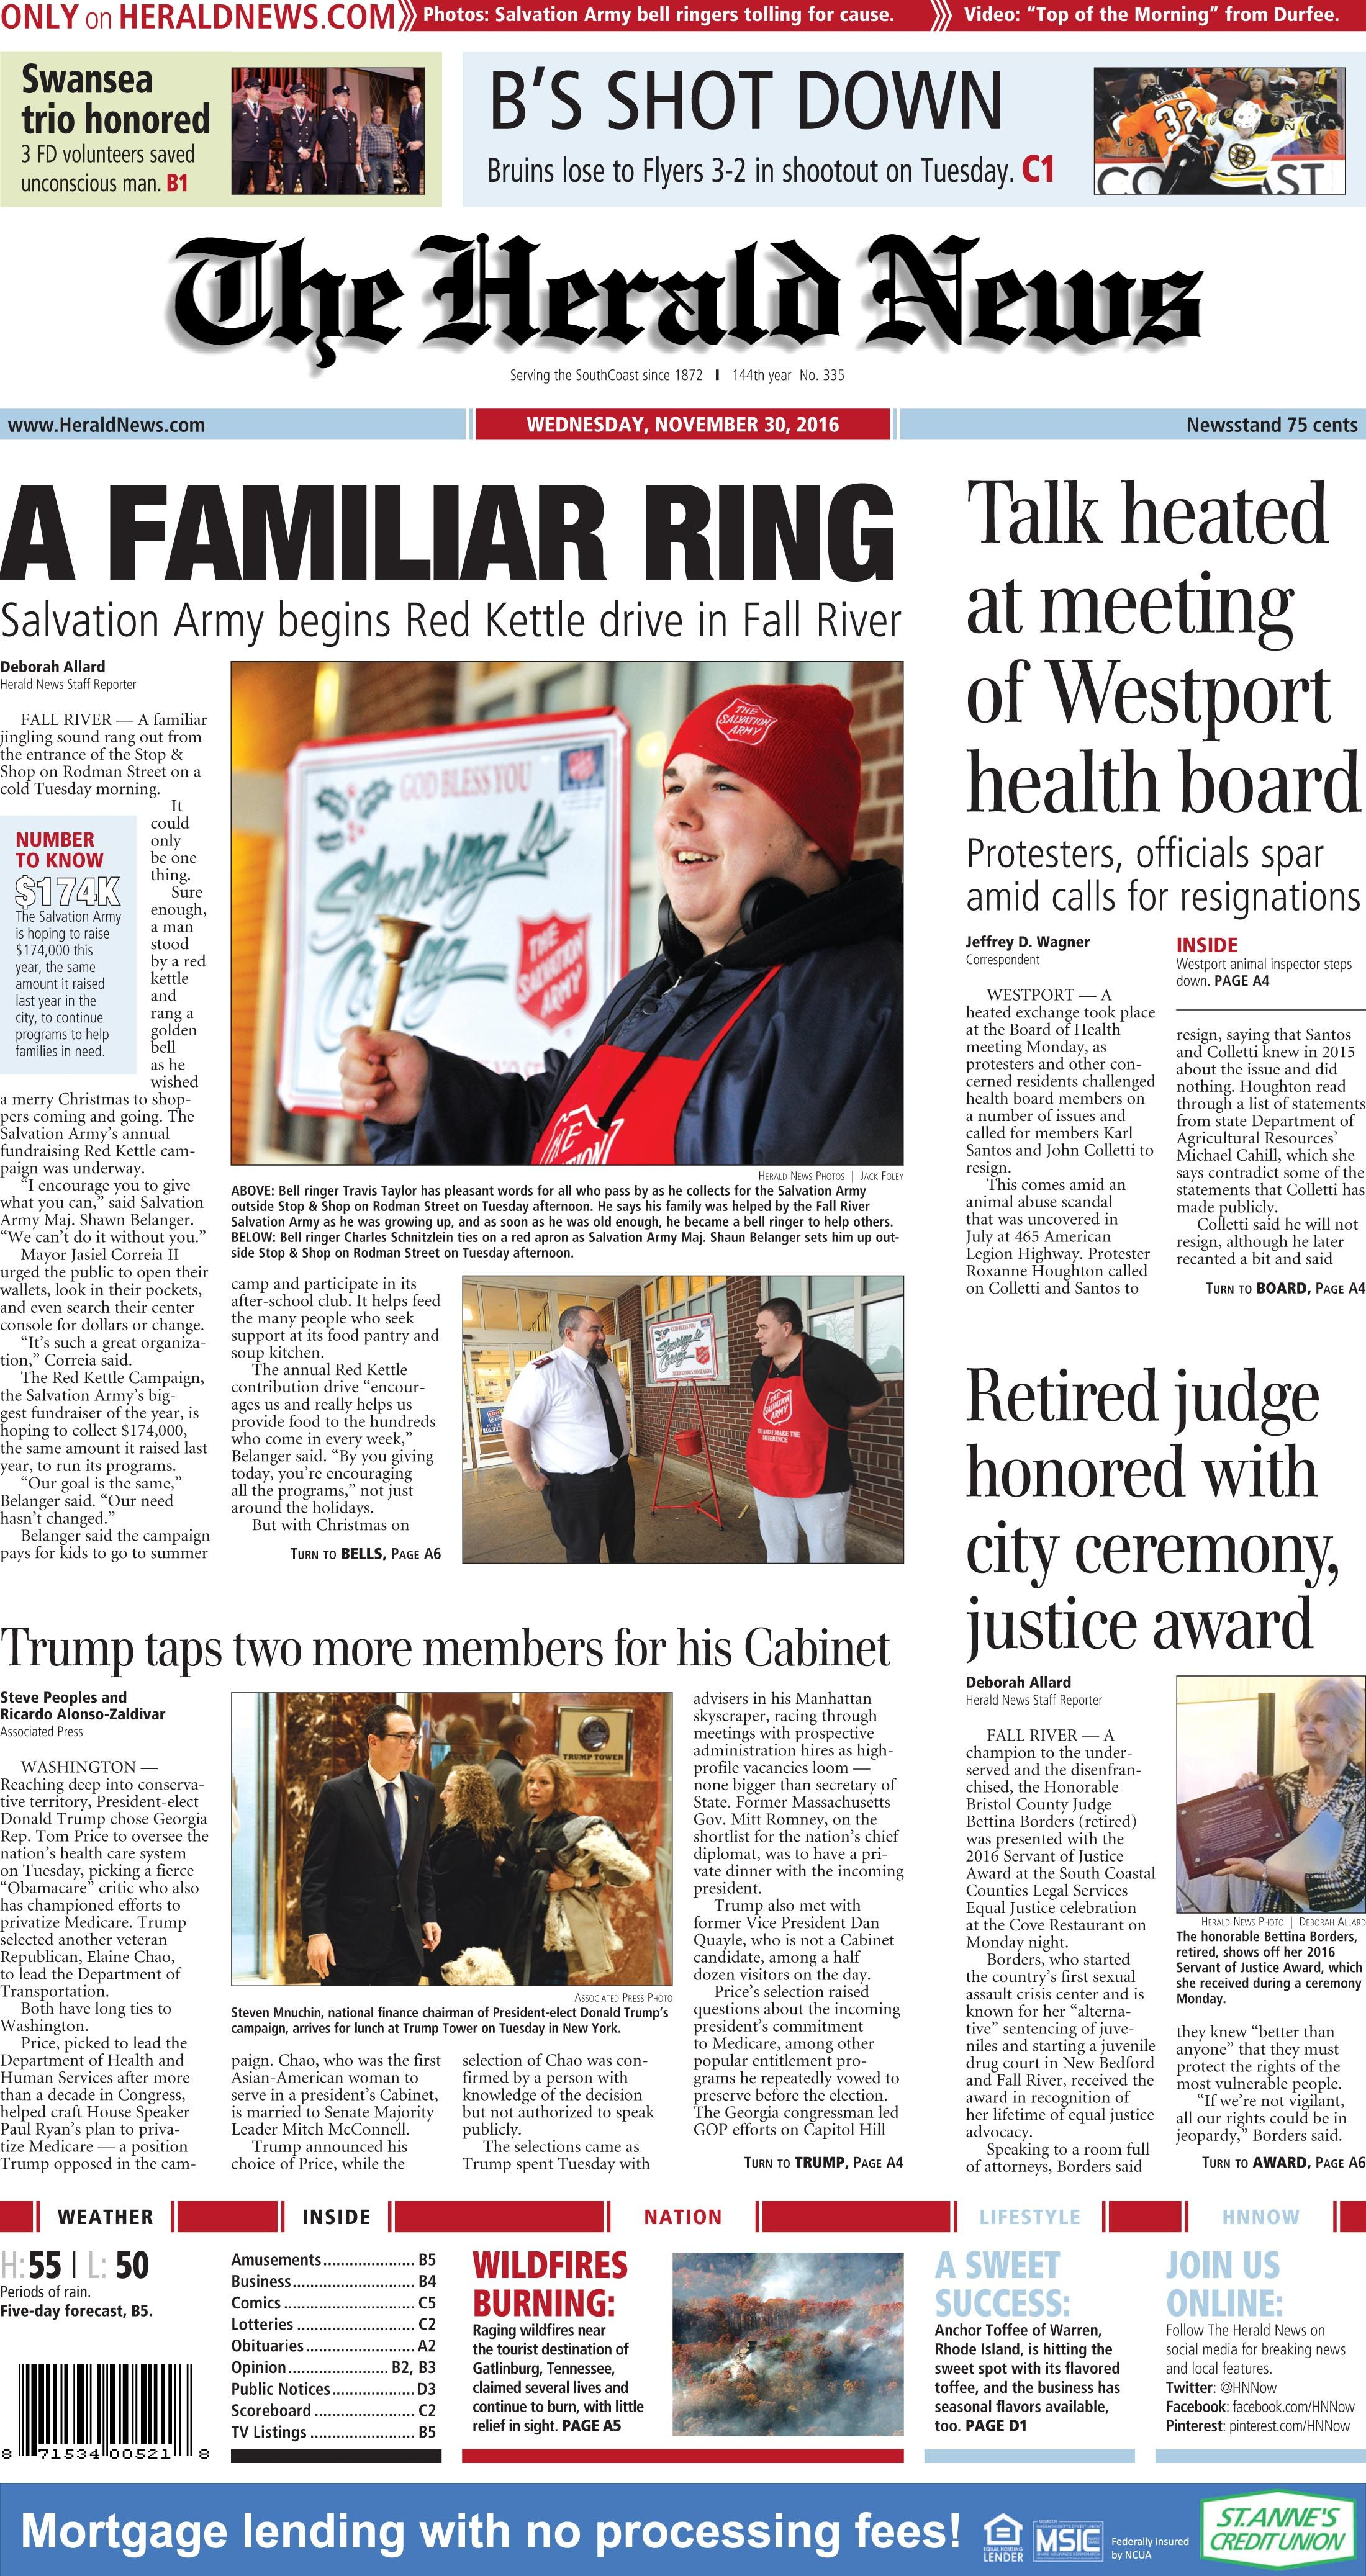 The front page of The Herald News for Wednesday, Nov. 7, 7